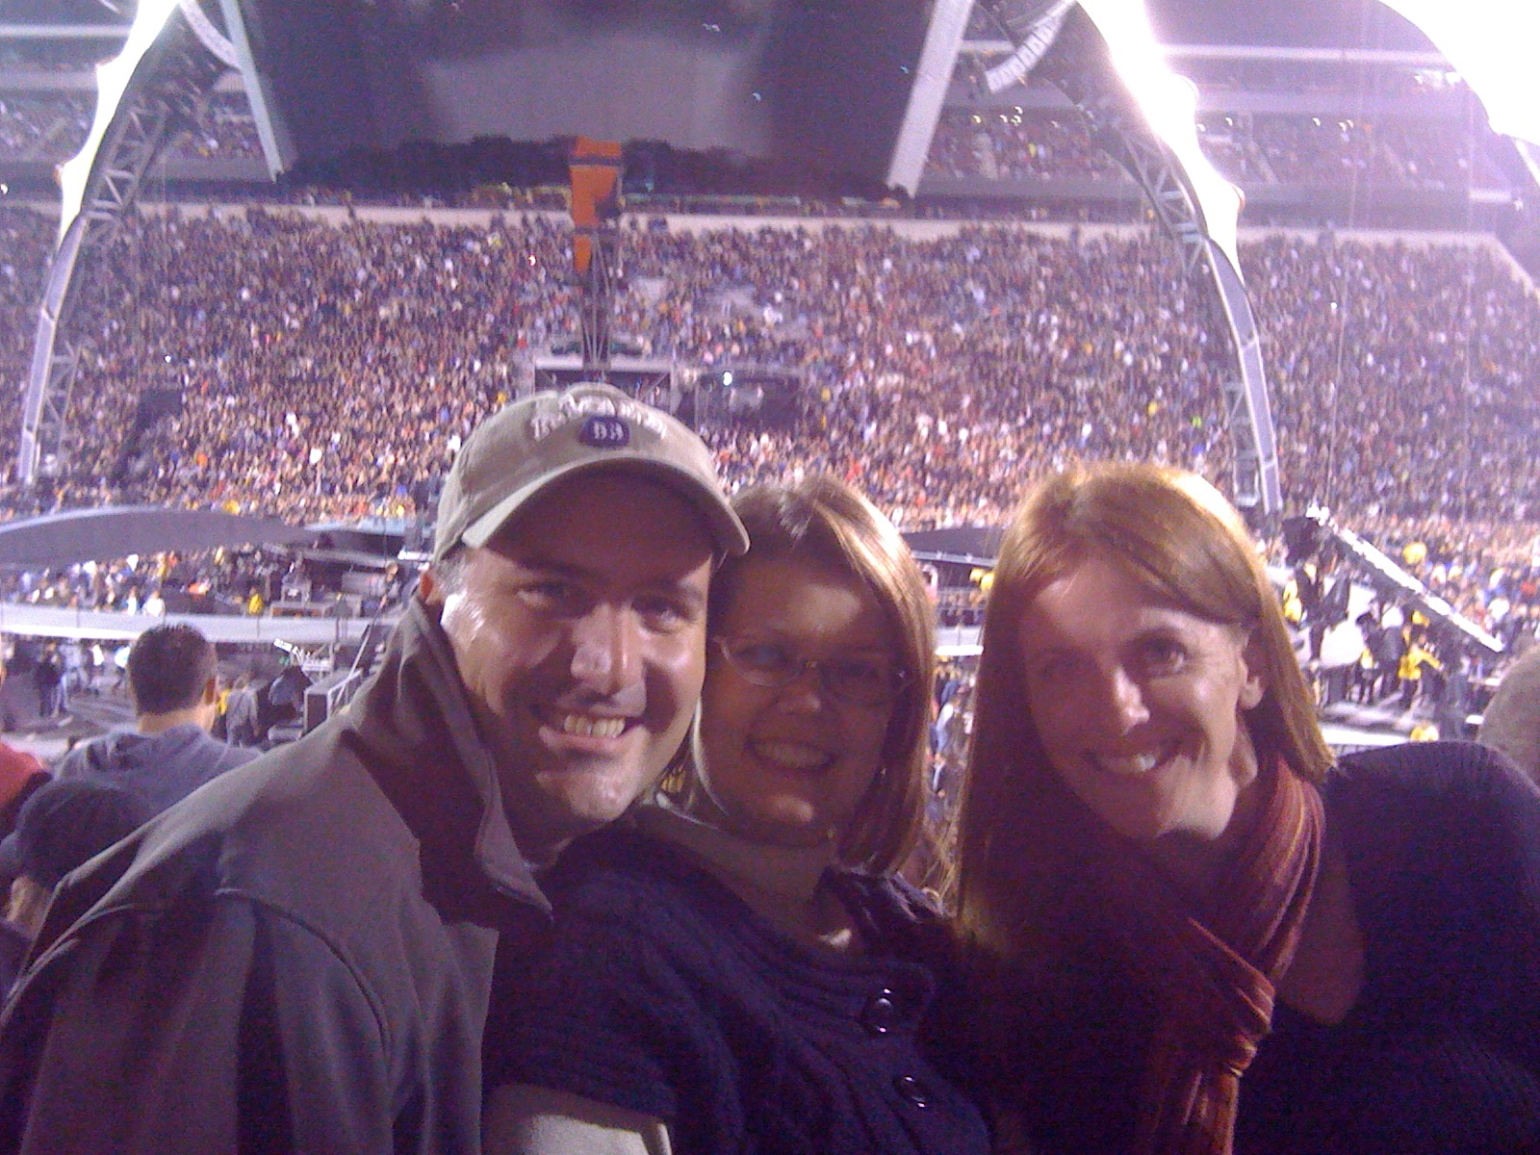 Kimberly and I with our friend Christy at the U2 concert in 2009.